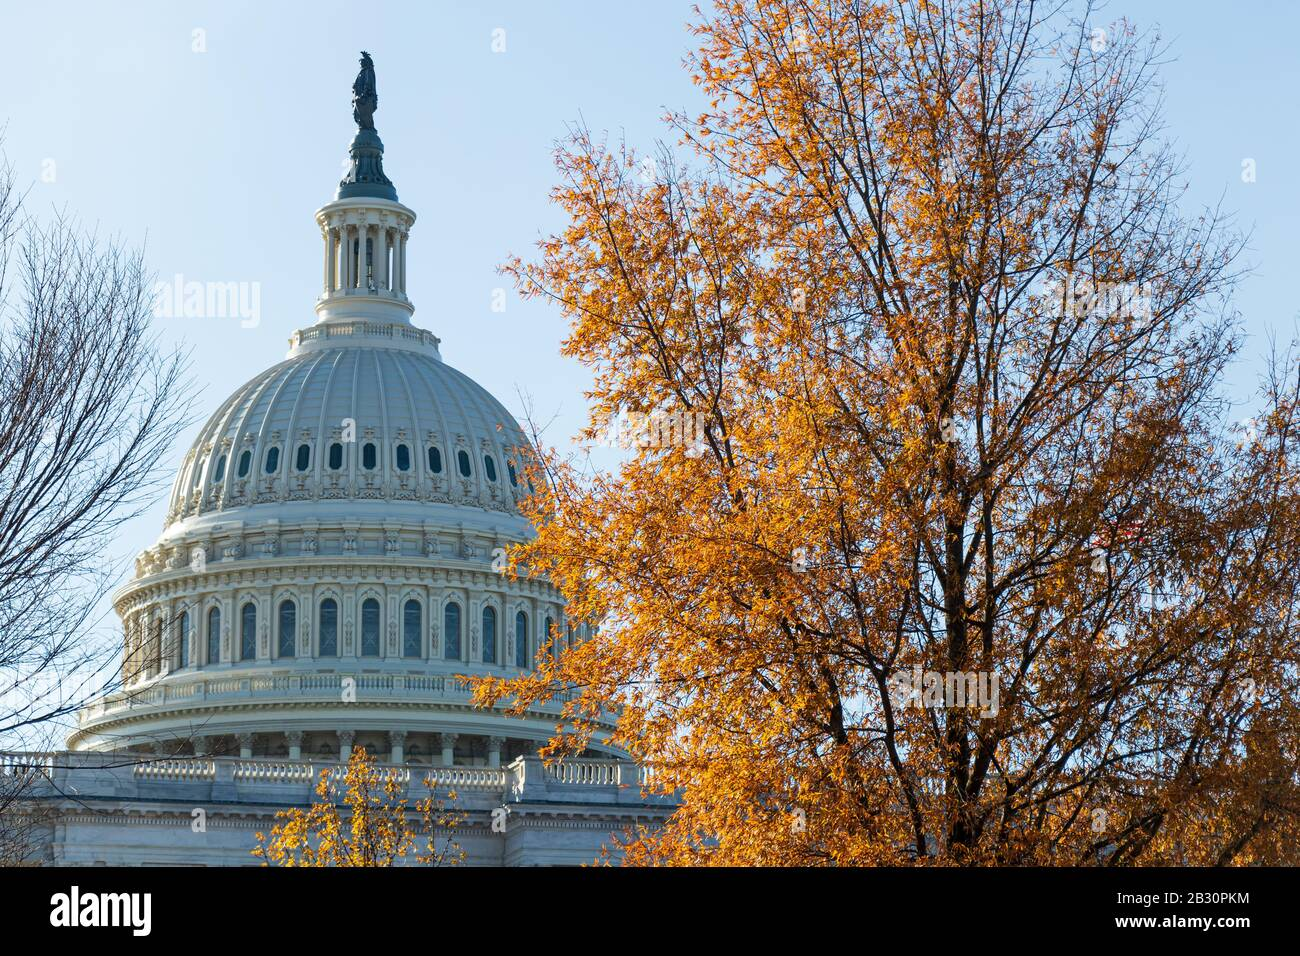 The United States Capital Building on a sunny day in Washington. Stock Photo